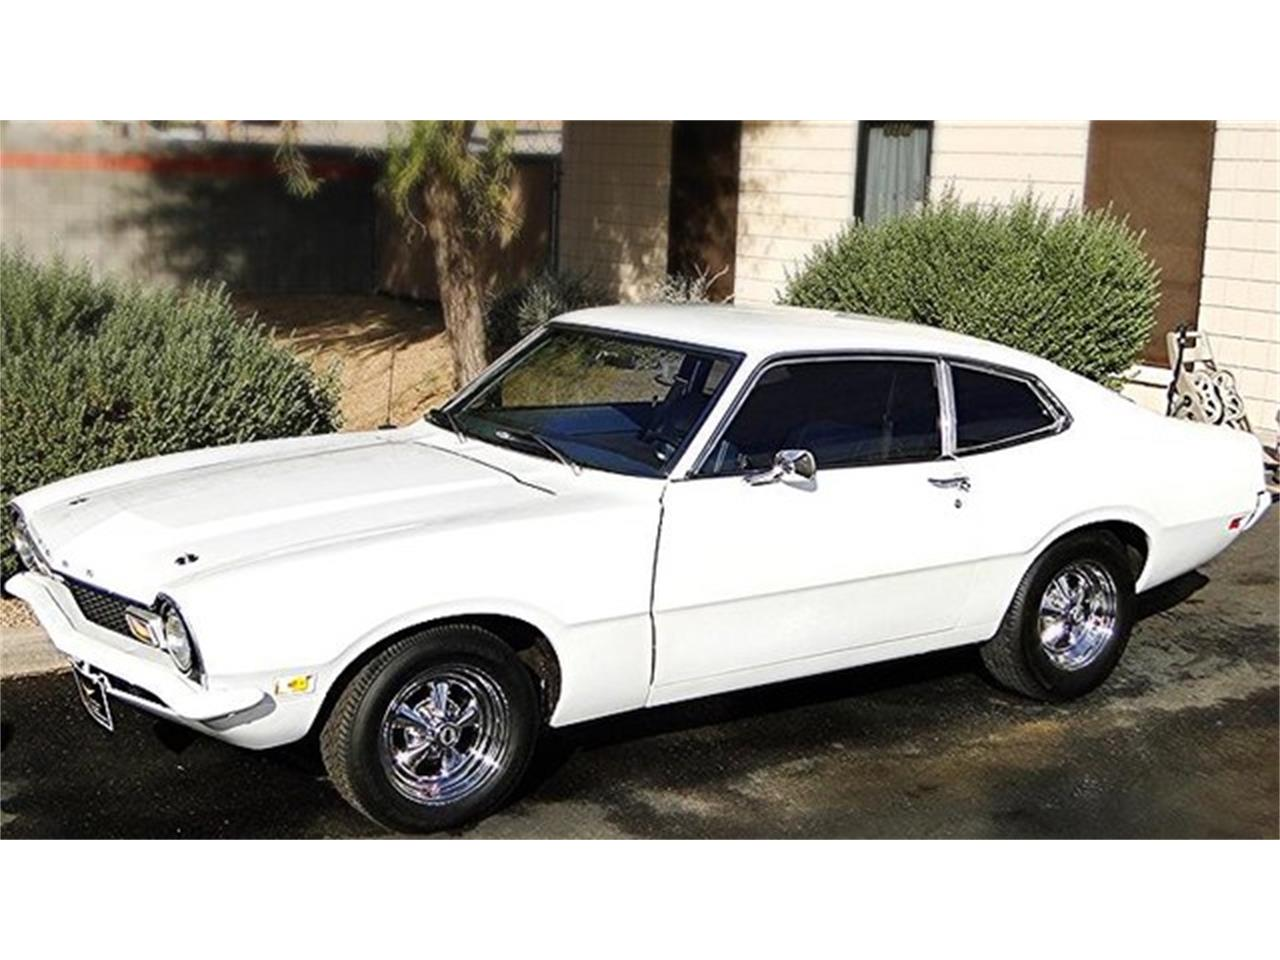 Large Picture of 1976 Ford Maverick located in Arizona Offered by Rare Performance Motorcars - DR81